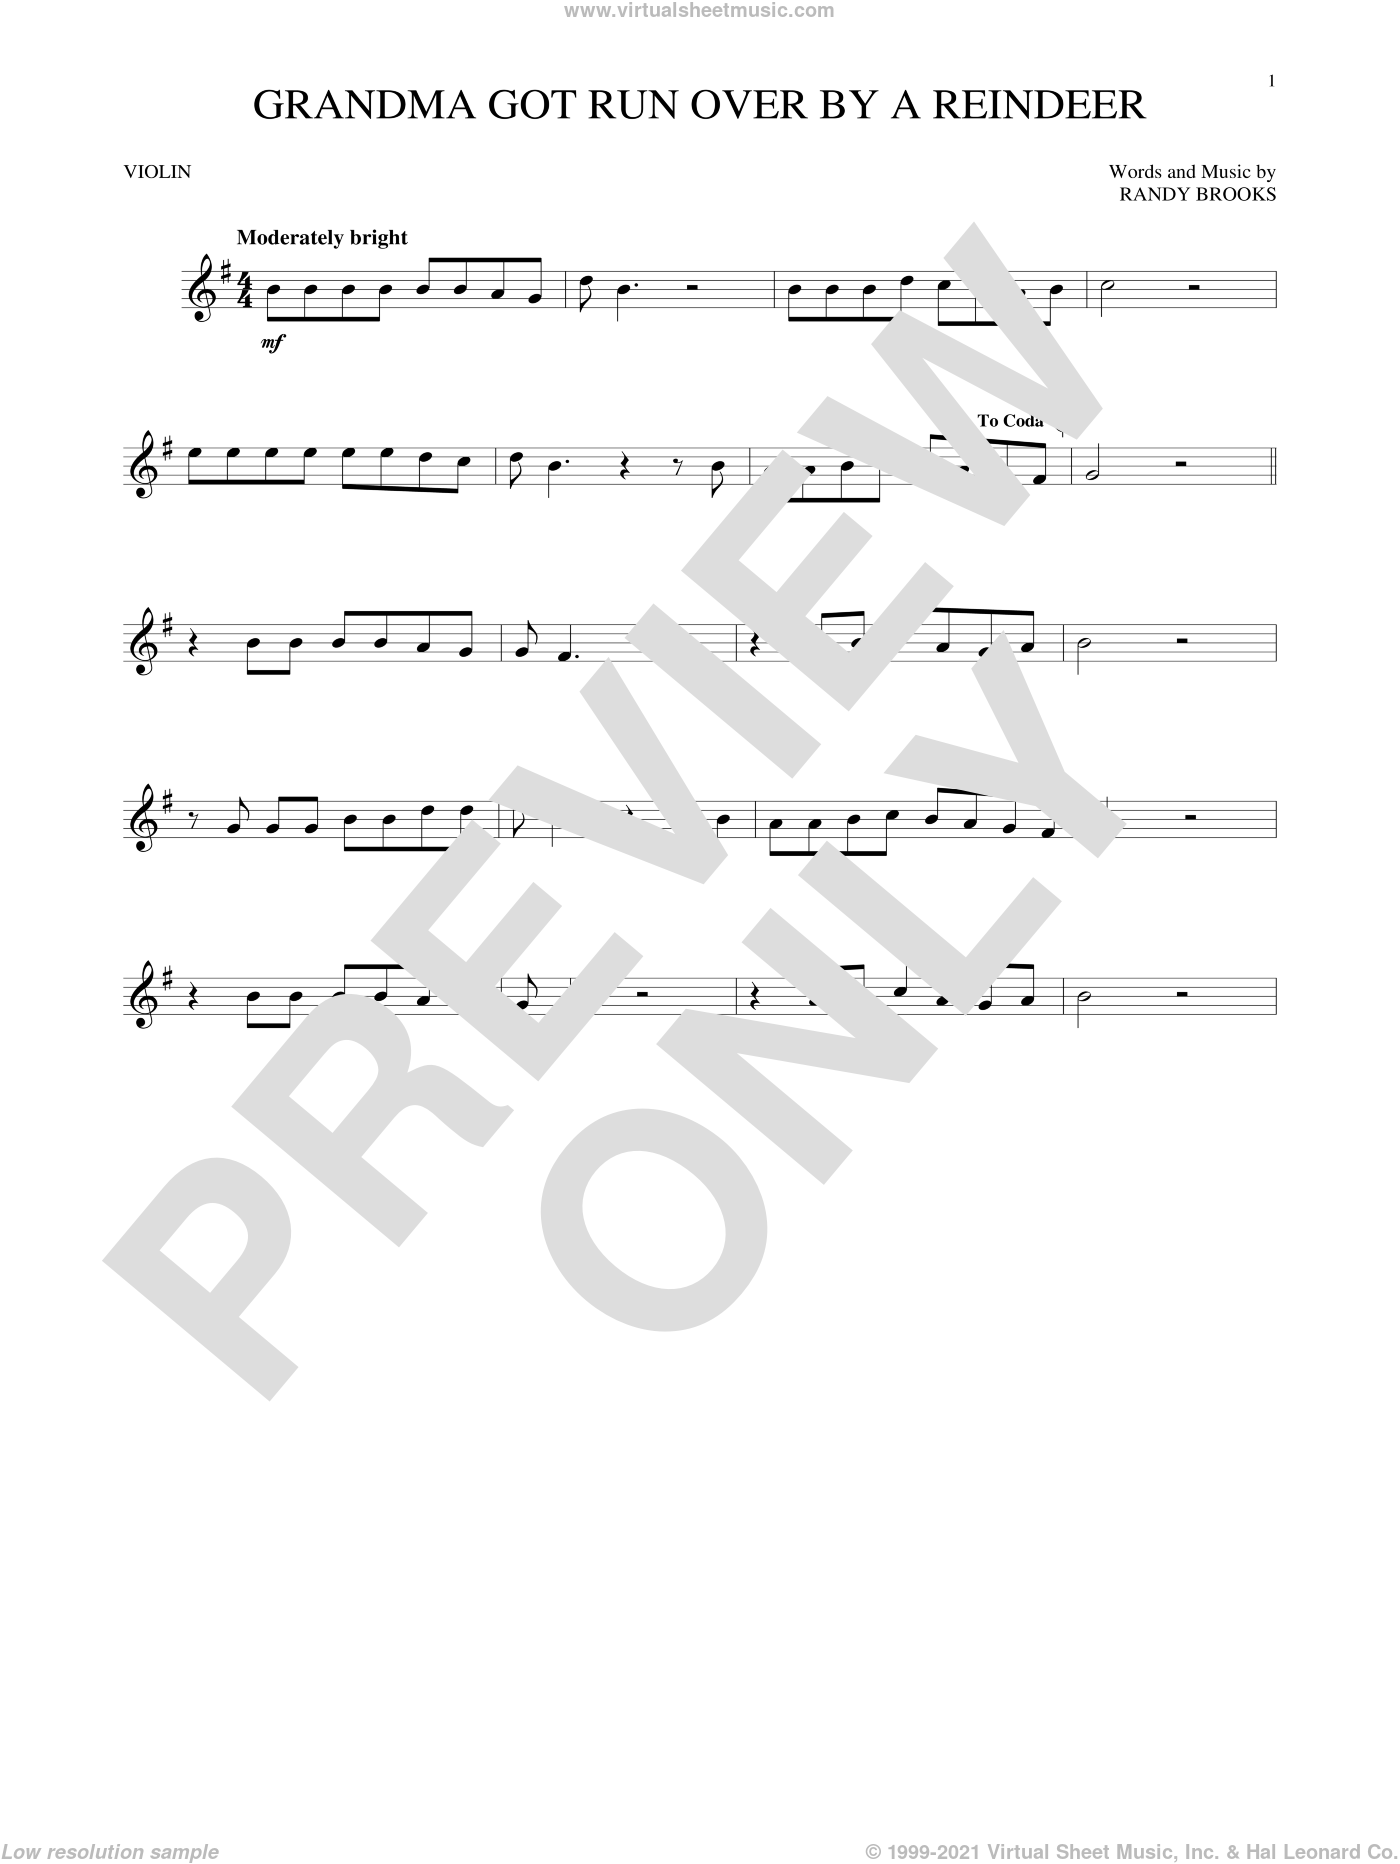 Grandma Got Run Over By A Reindeer sheet music for violin solo by Randy Brooks. Score Image Preview.